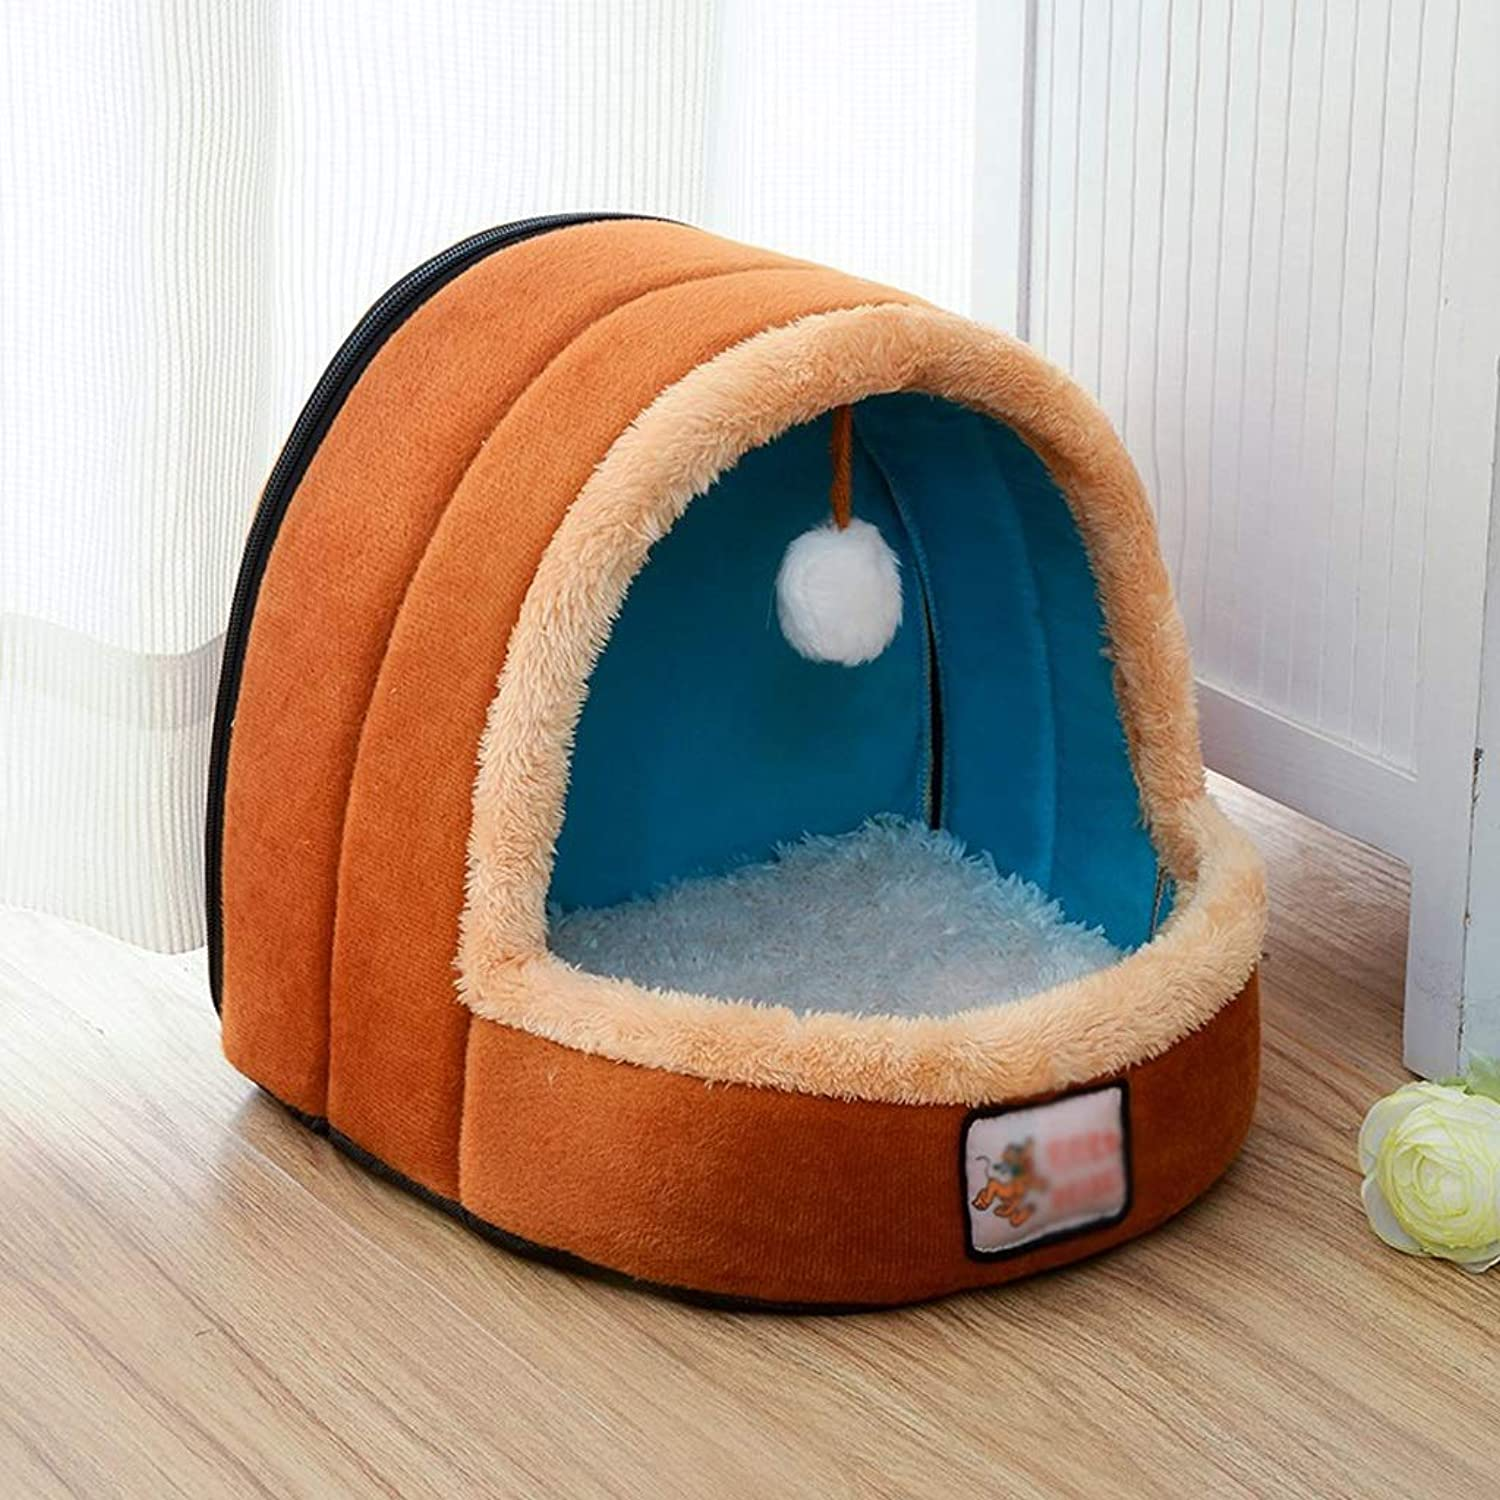 DNSJB Kennel Puppy Nest Small Dog Bed Cat Litter Removable And Washable Four Seasons General Teddy Pet Supplies (Size   S)